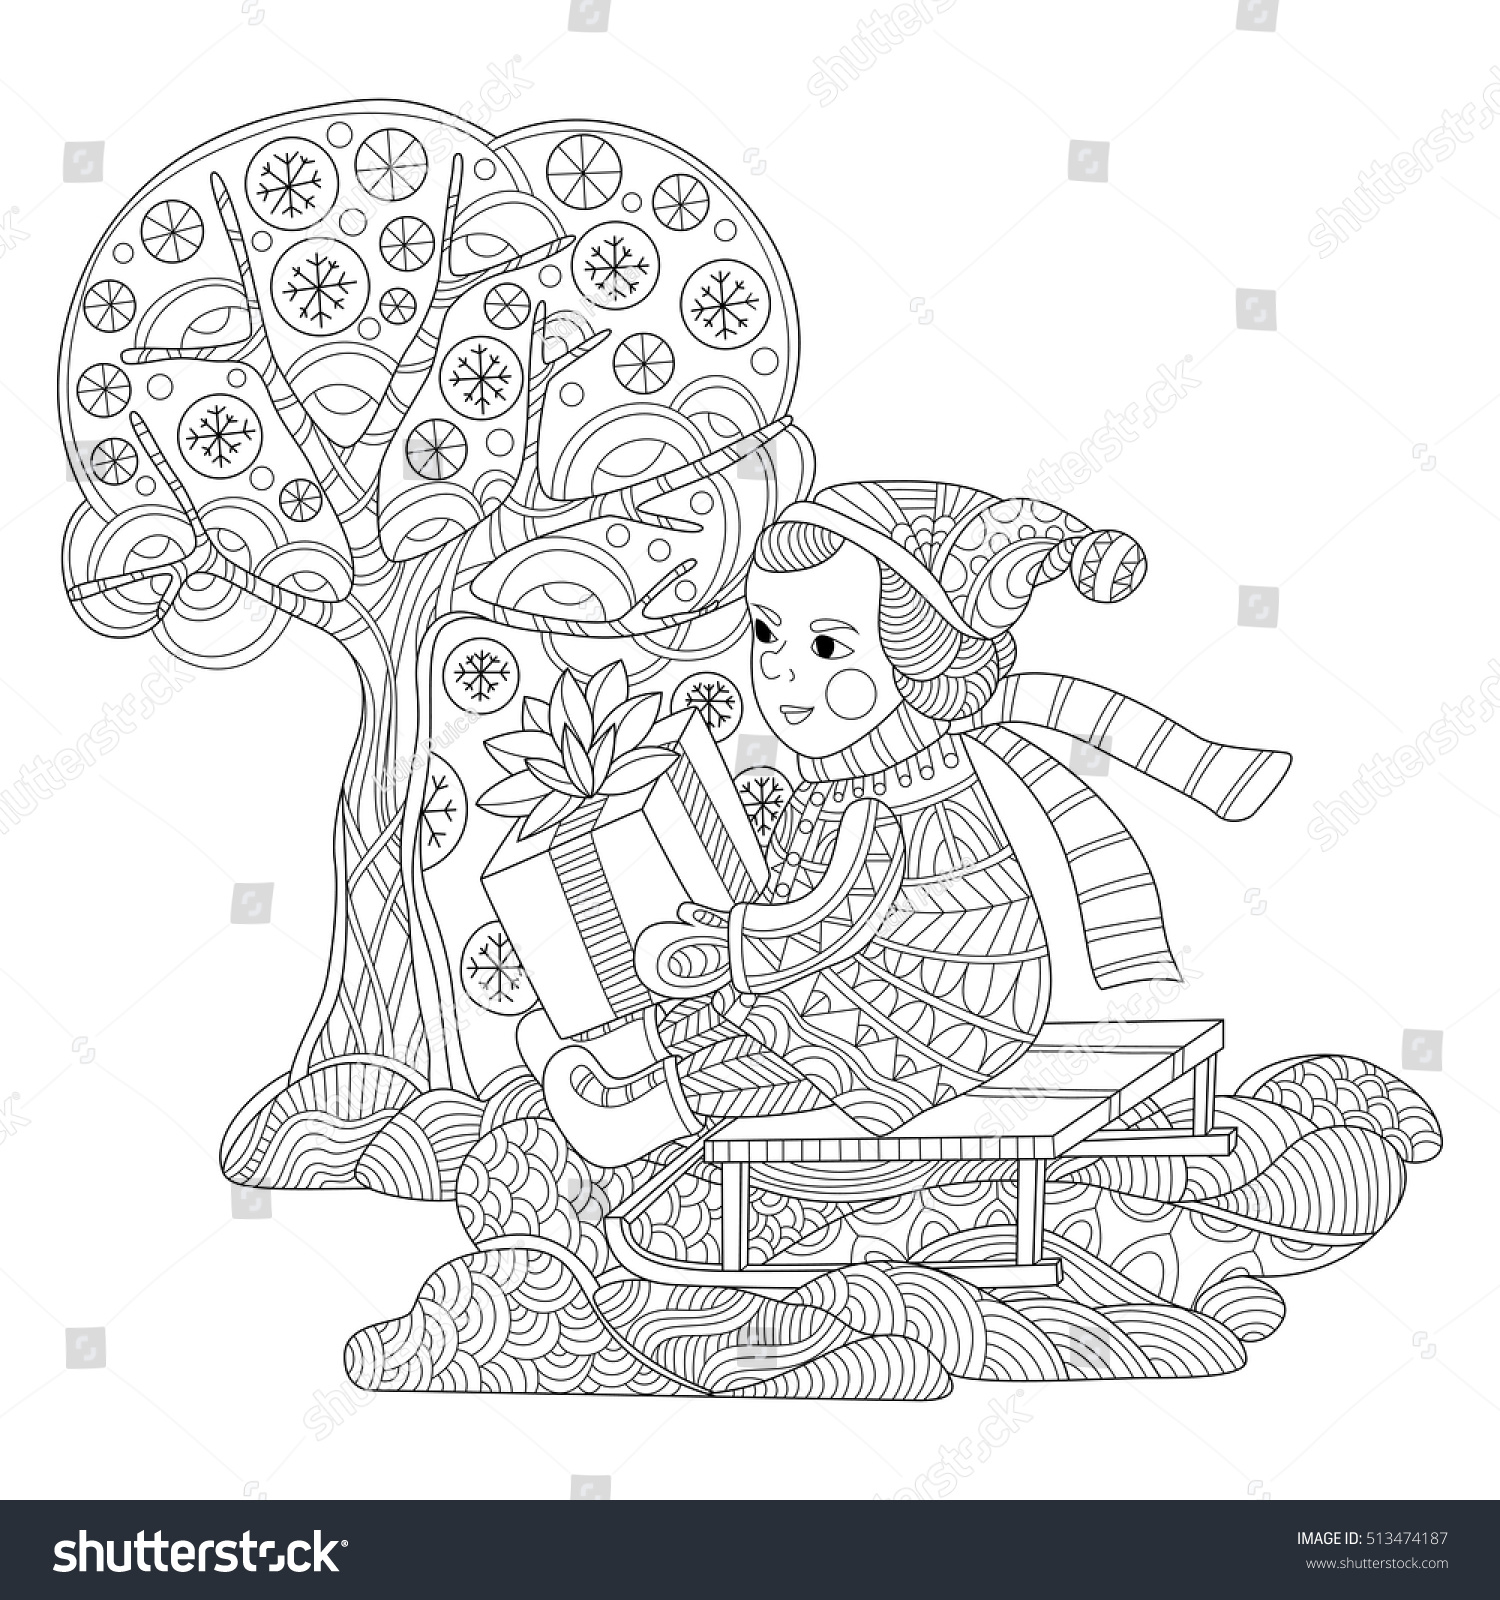 present on sledge coloring page stock vector 513474187